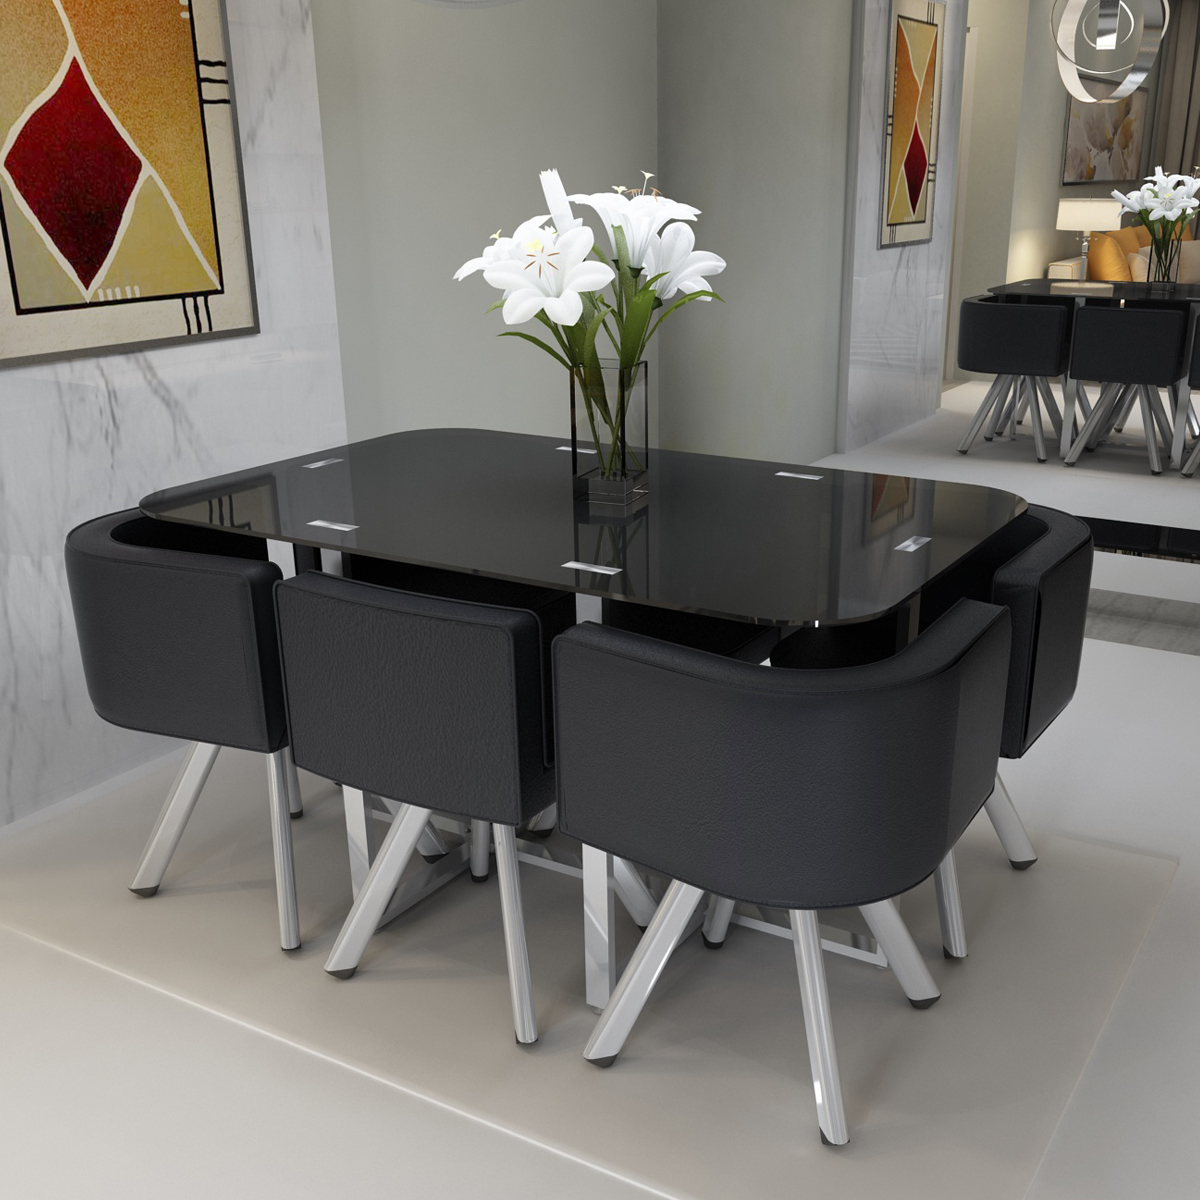 high glass dining table w 4 6 pu leather chairs set round. Black Bedroom Furniture Sets. Home Design Ideas